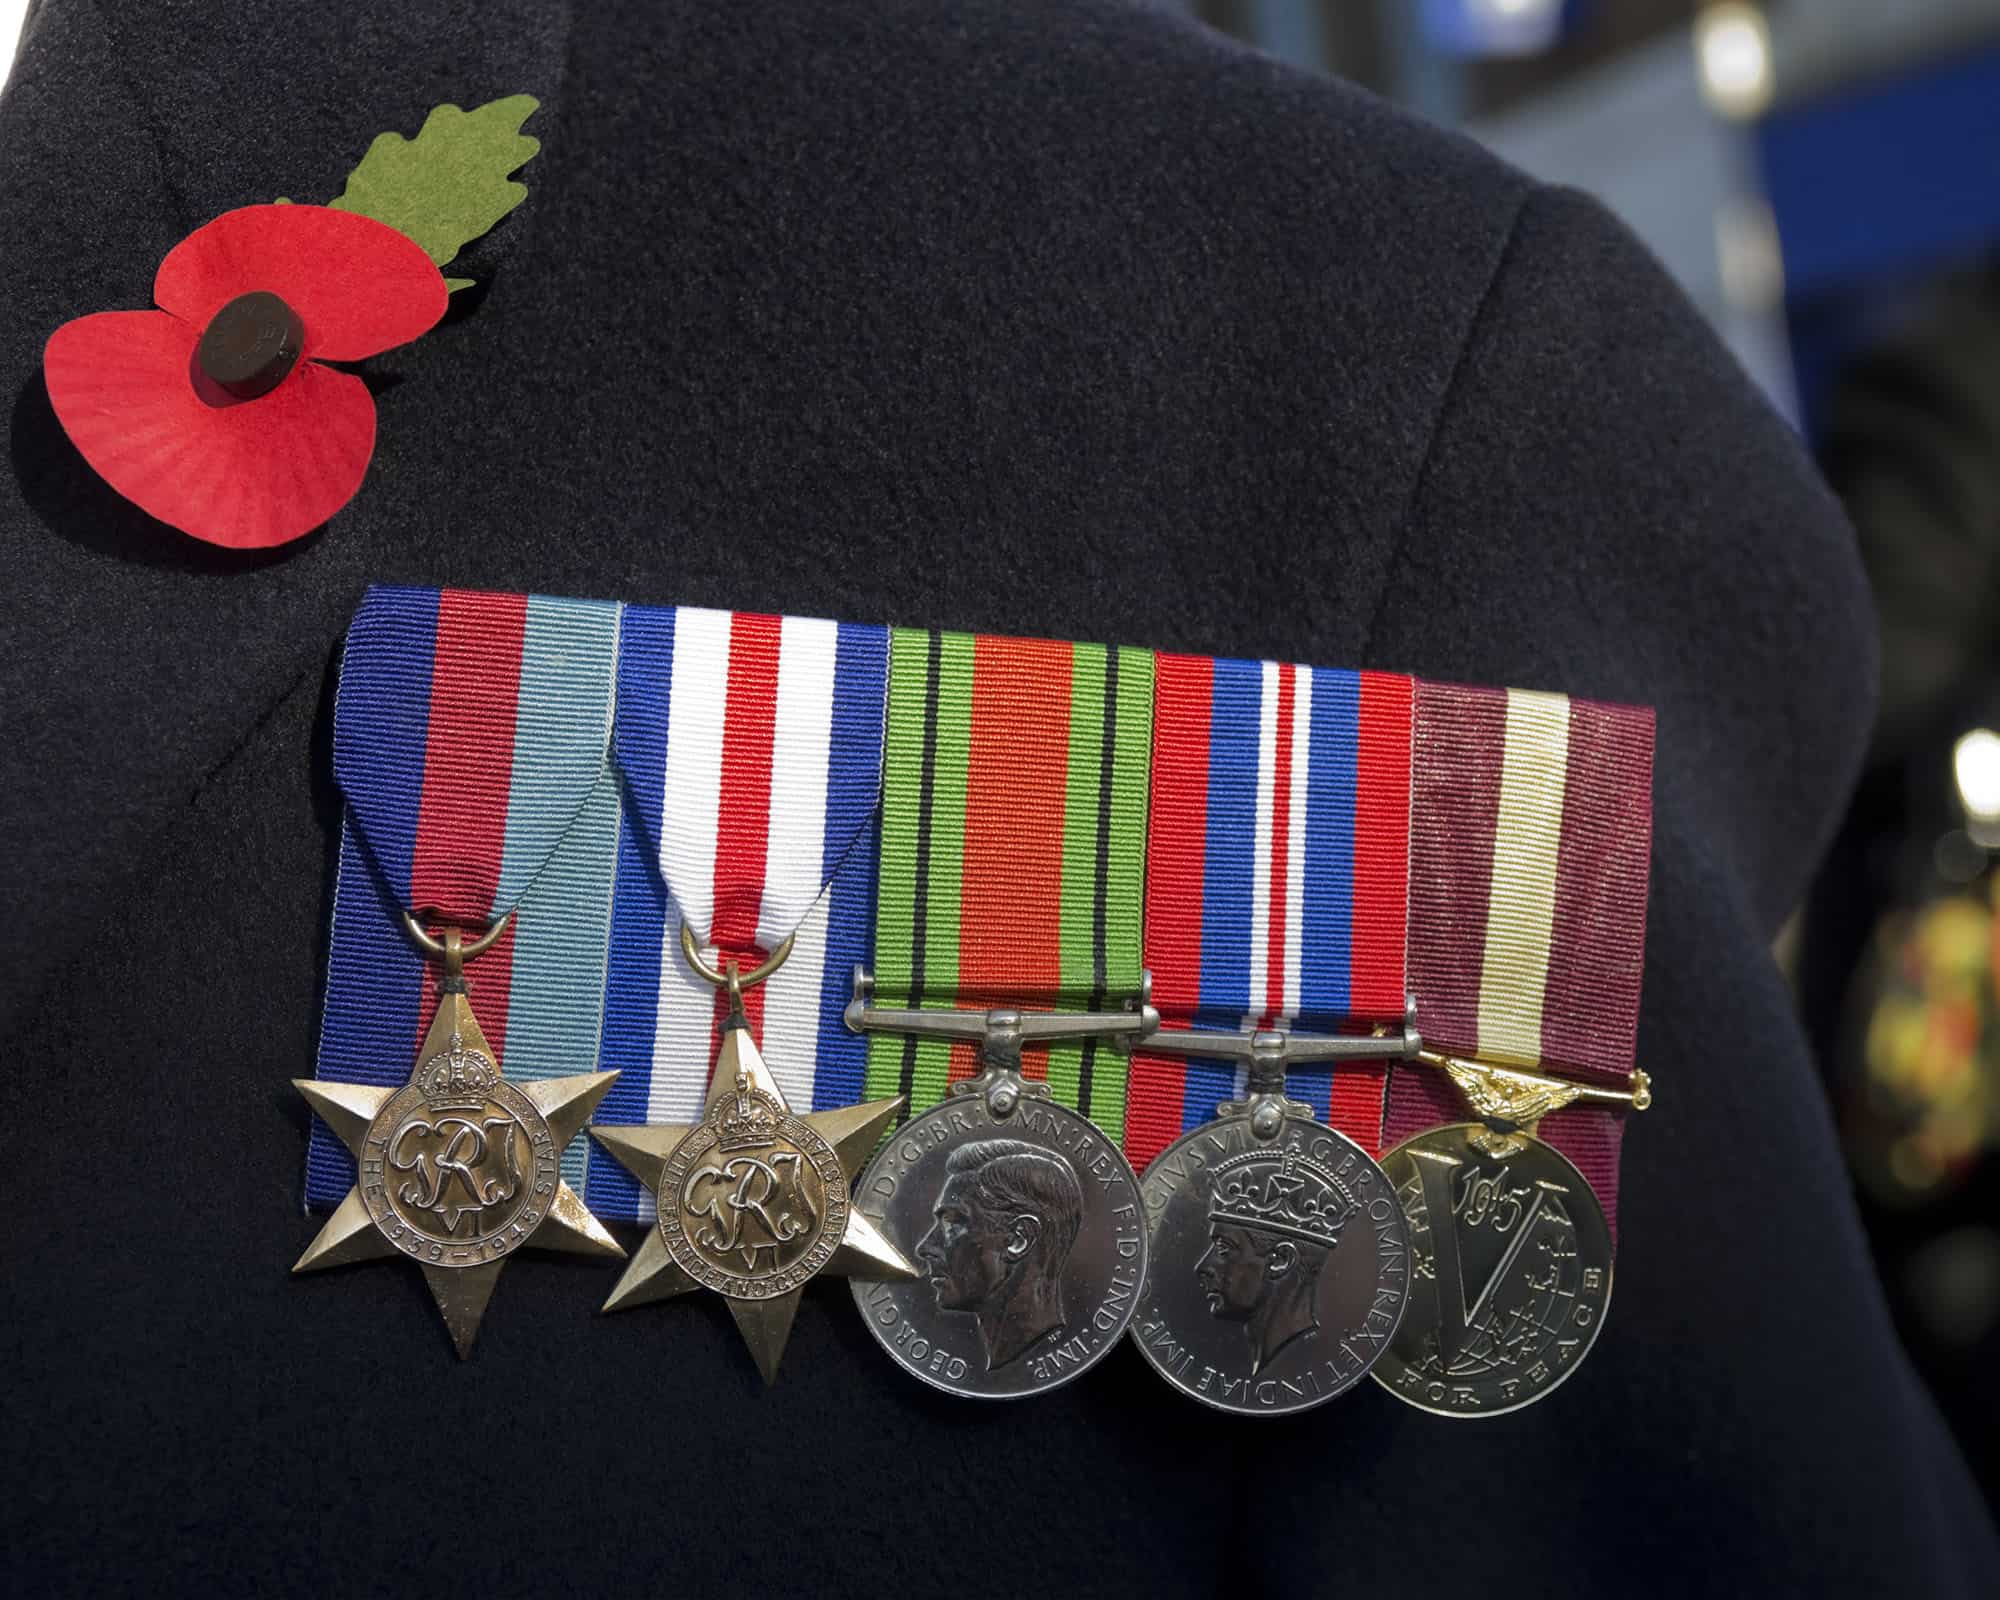 Close up of British Second World War Veteran's medals